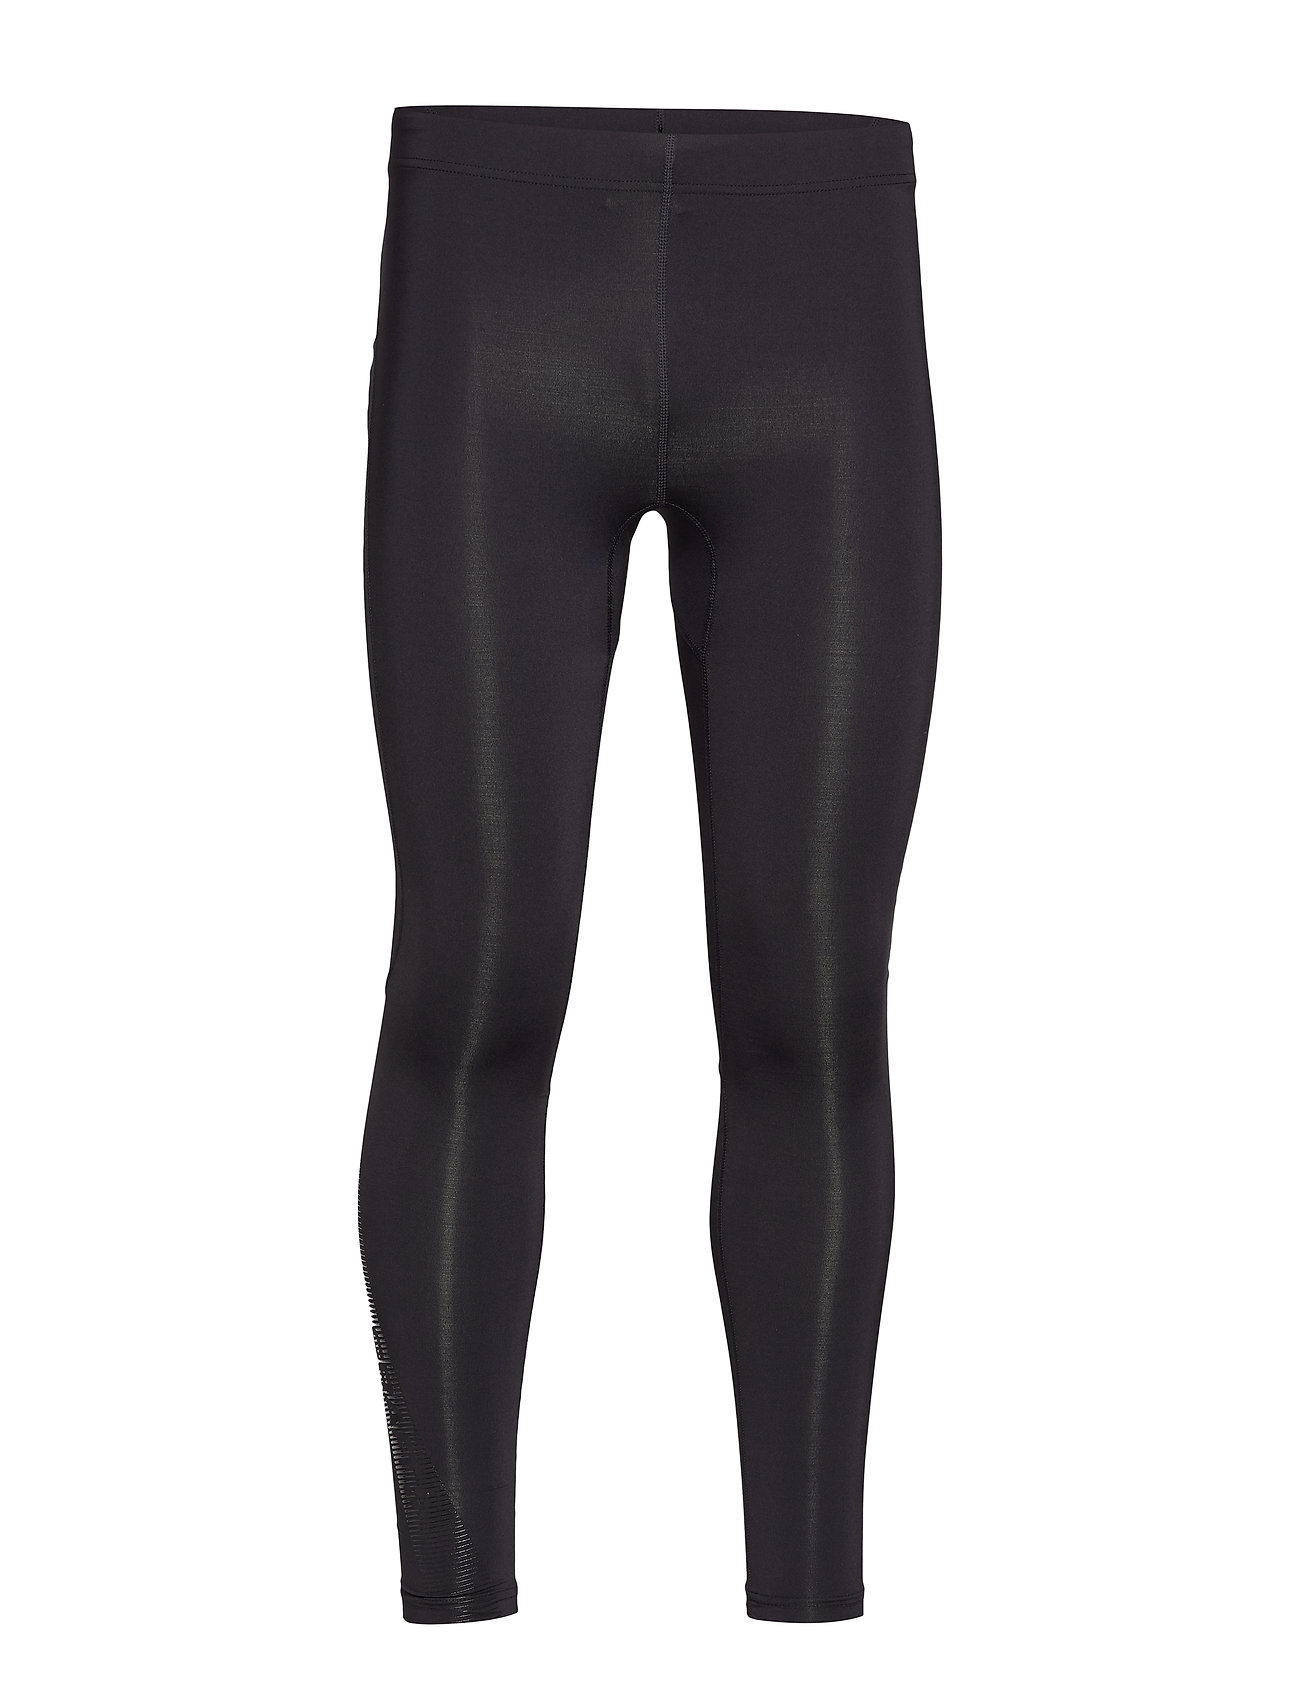 Craft ESSENTIAL COMPRESSION TIGHTS M - BLACK